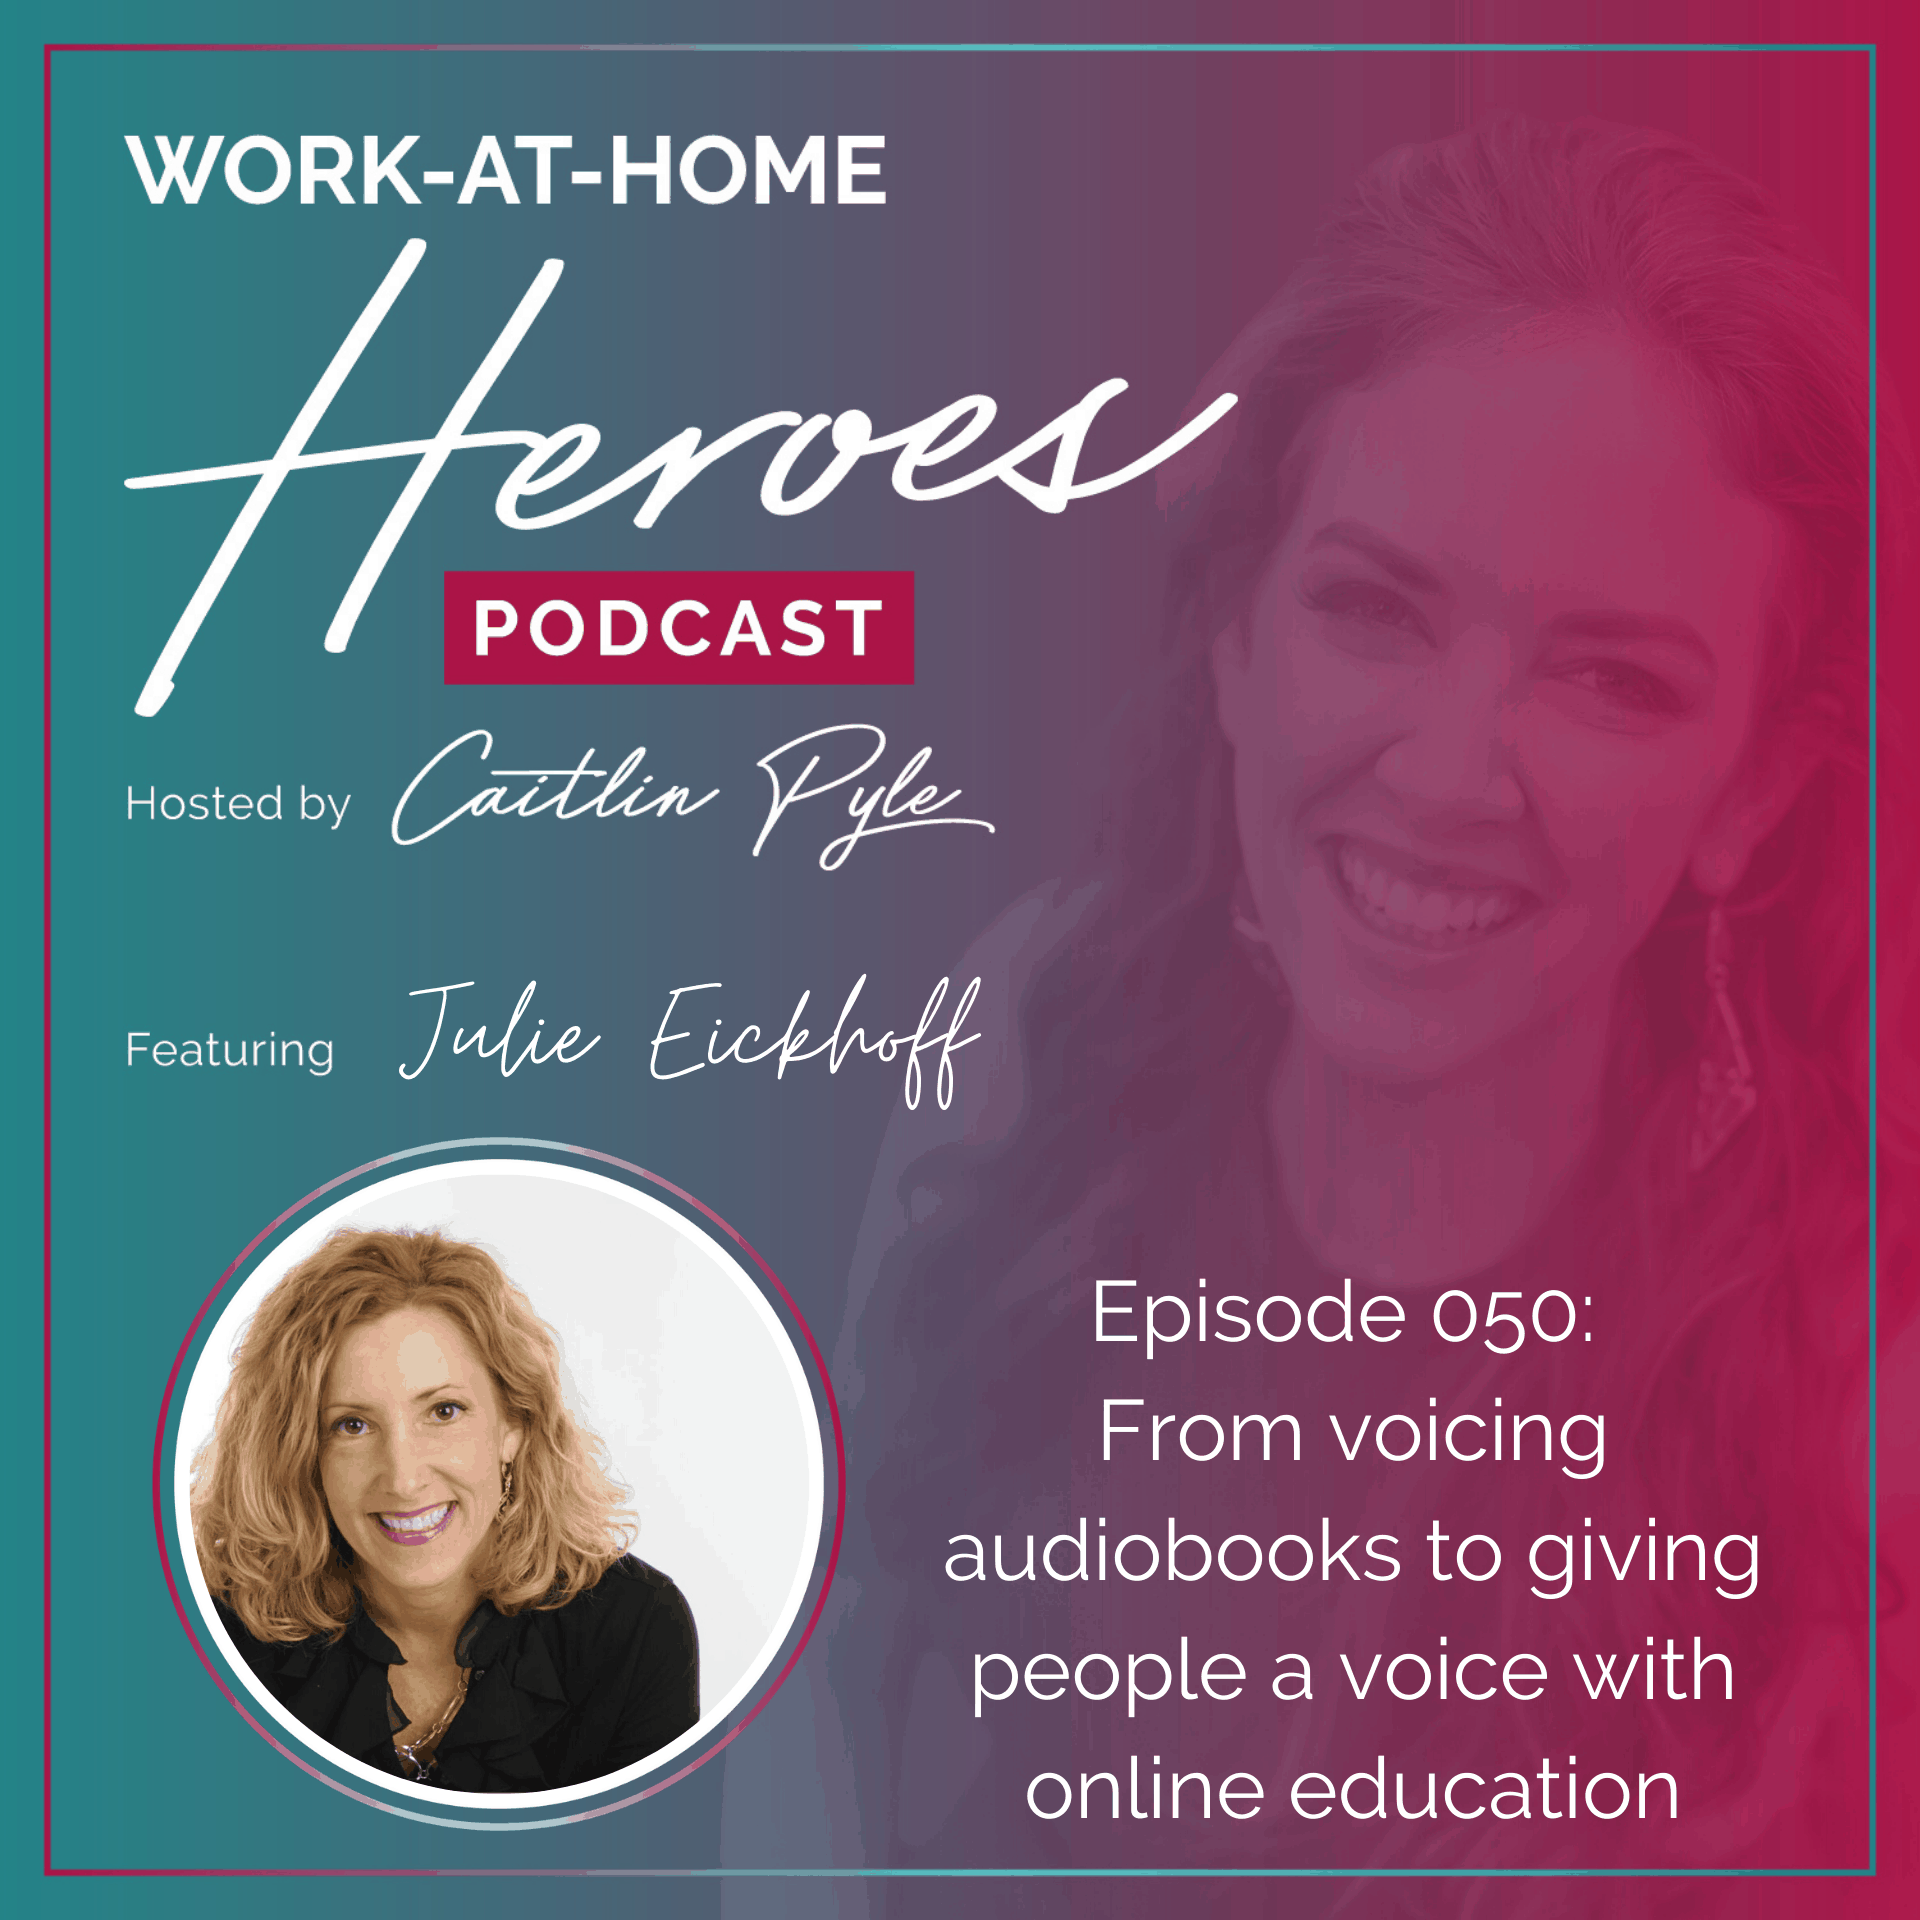 Julie Eickhoff voicing audiobooks to giving people a voice with online education